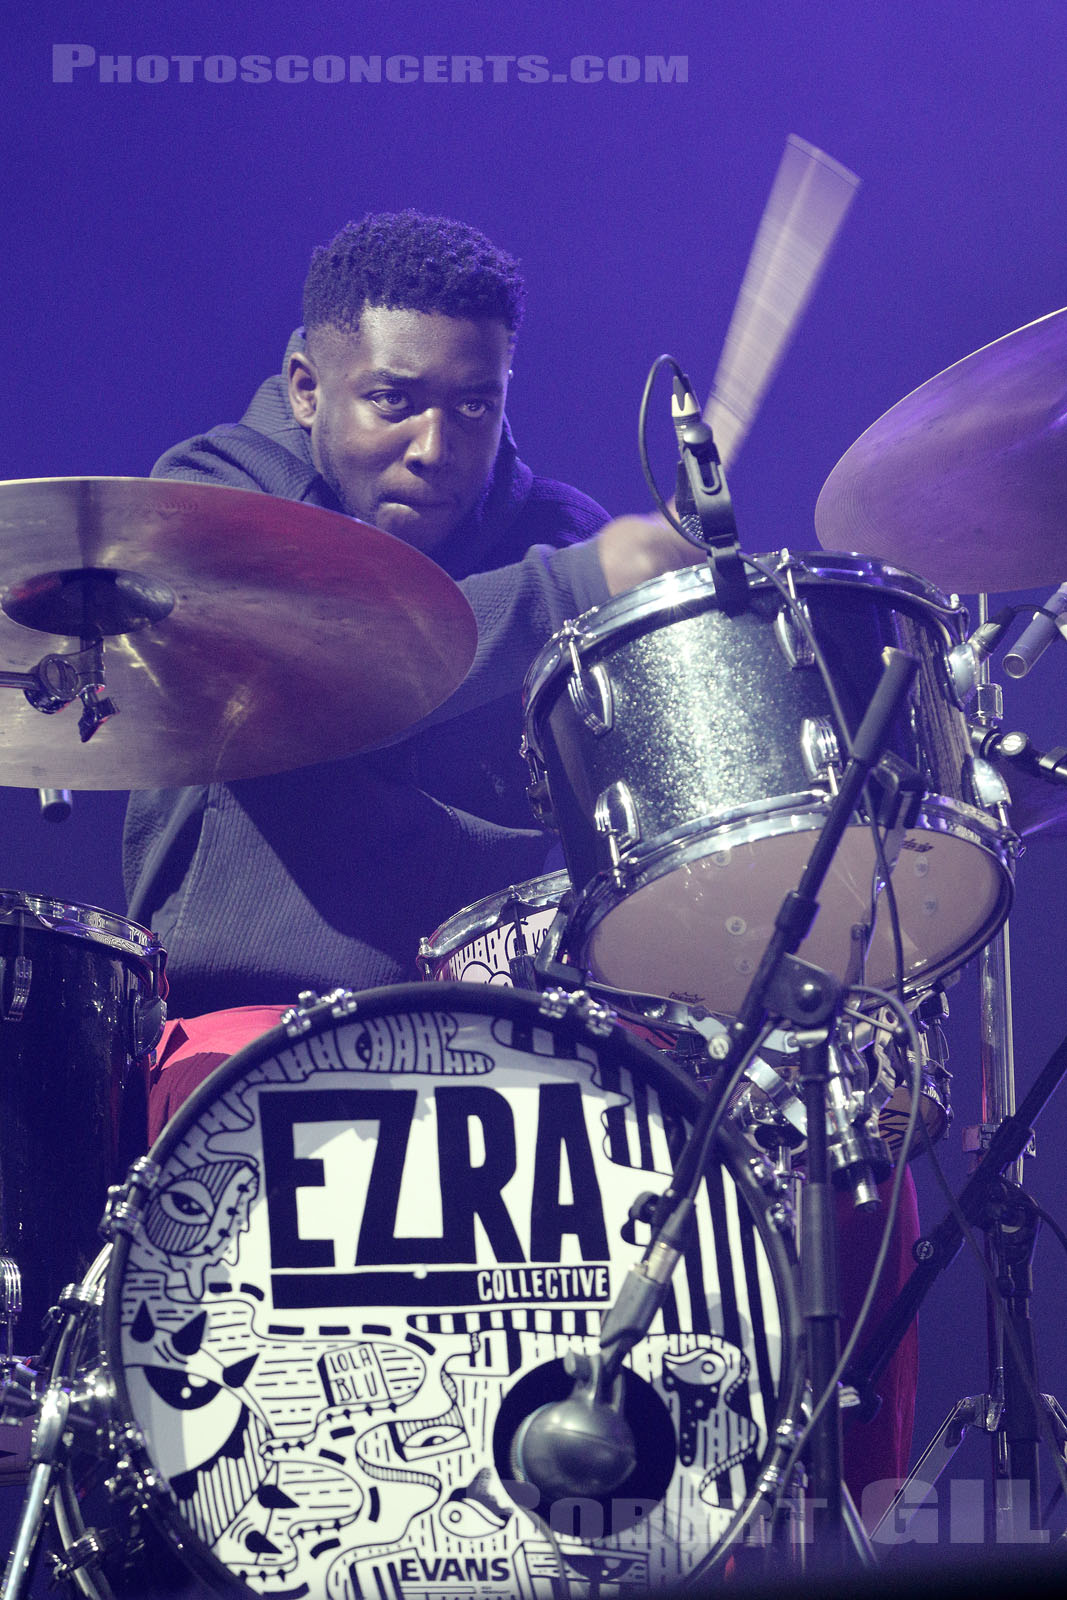 EZRA COLLECTIVE - 2019-10-31 - PARIS - Grande Halle de La Villette